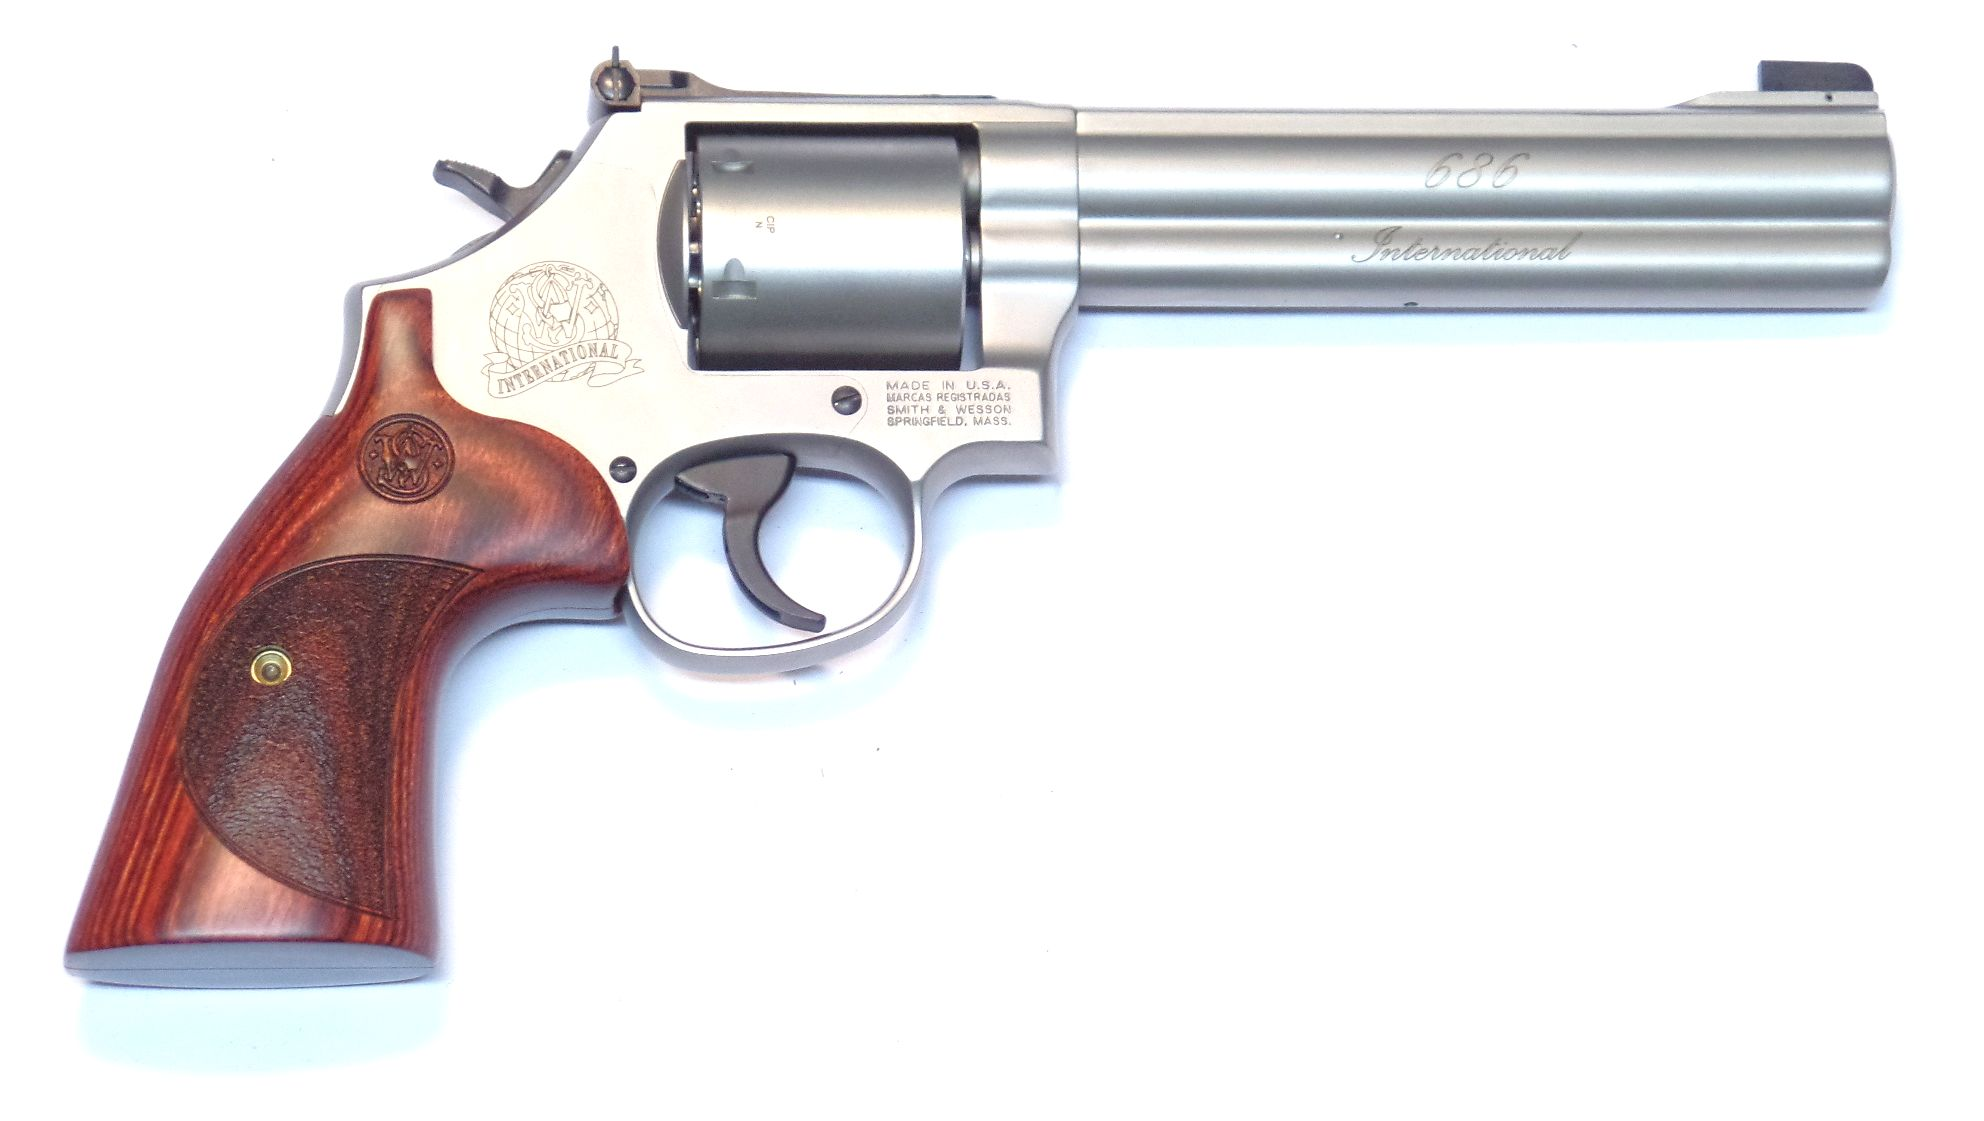 Smith & Wesson Modèle 686 -6 calibre 357 Magnum